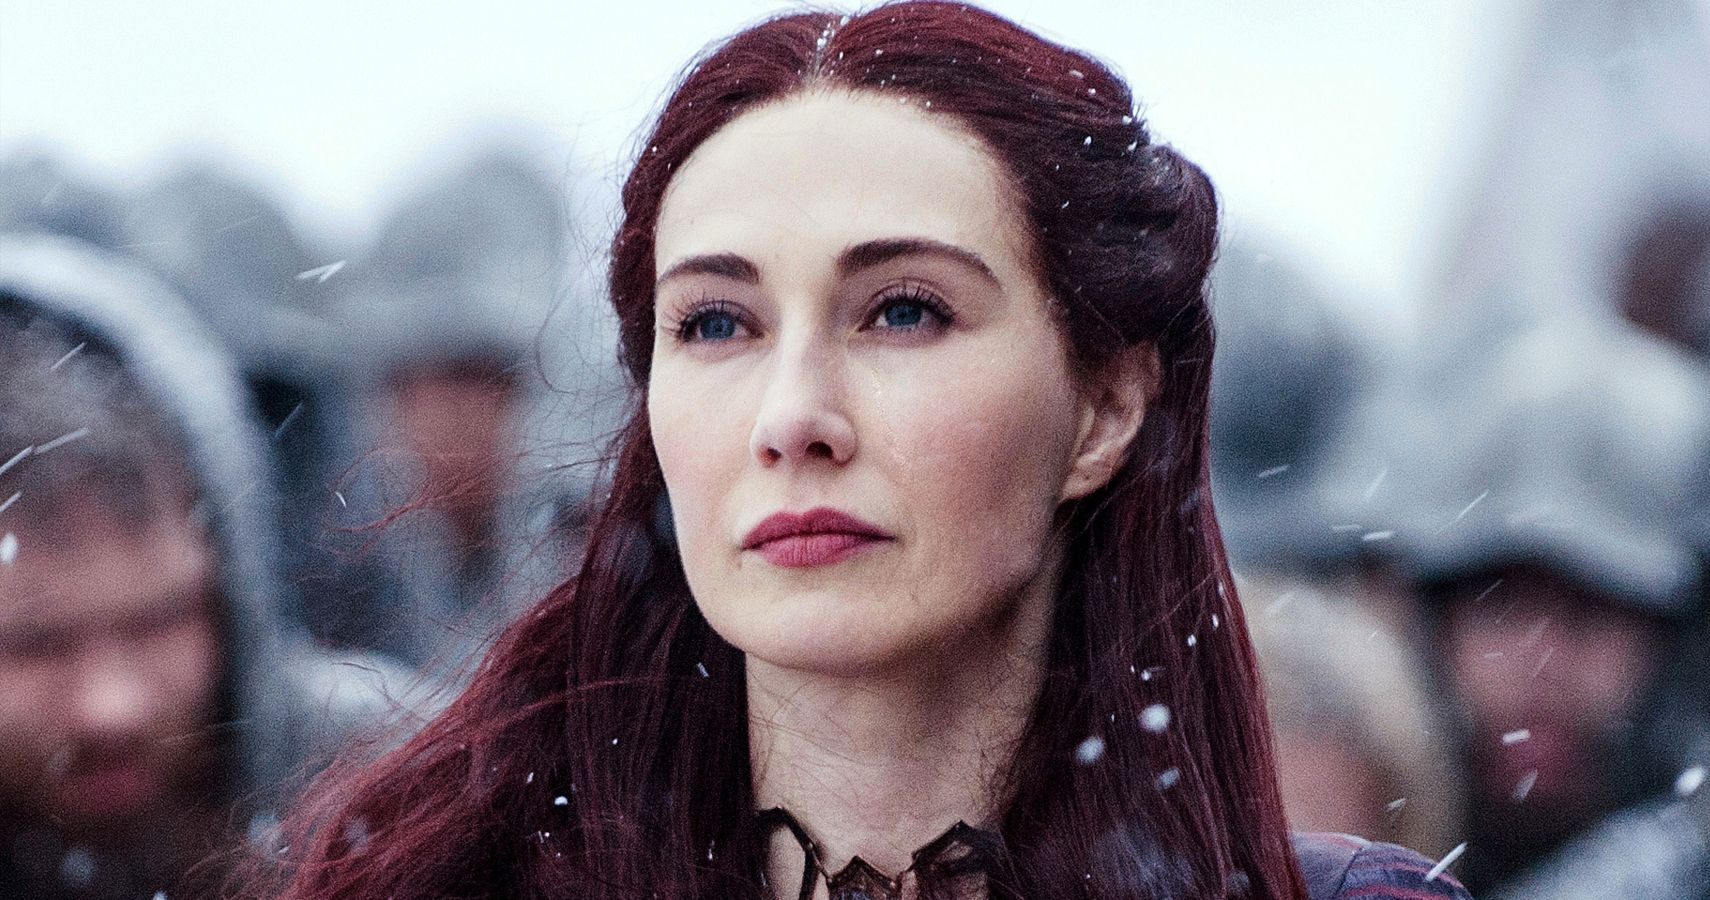 8 Prophecies By Melisandre That Have Come True 2 That Have Yet To